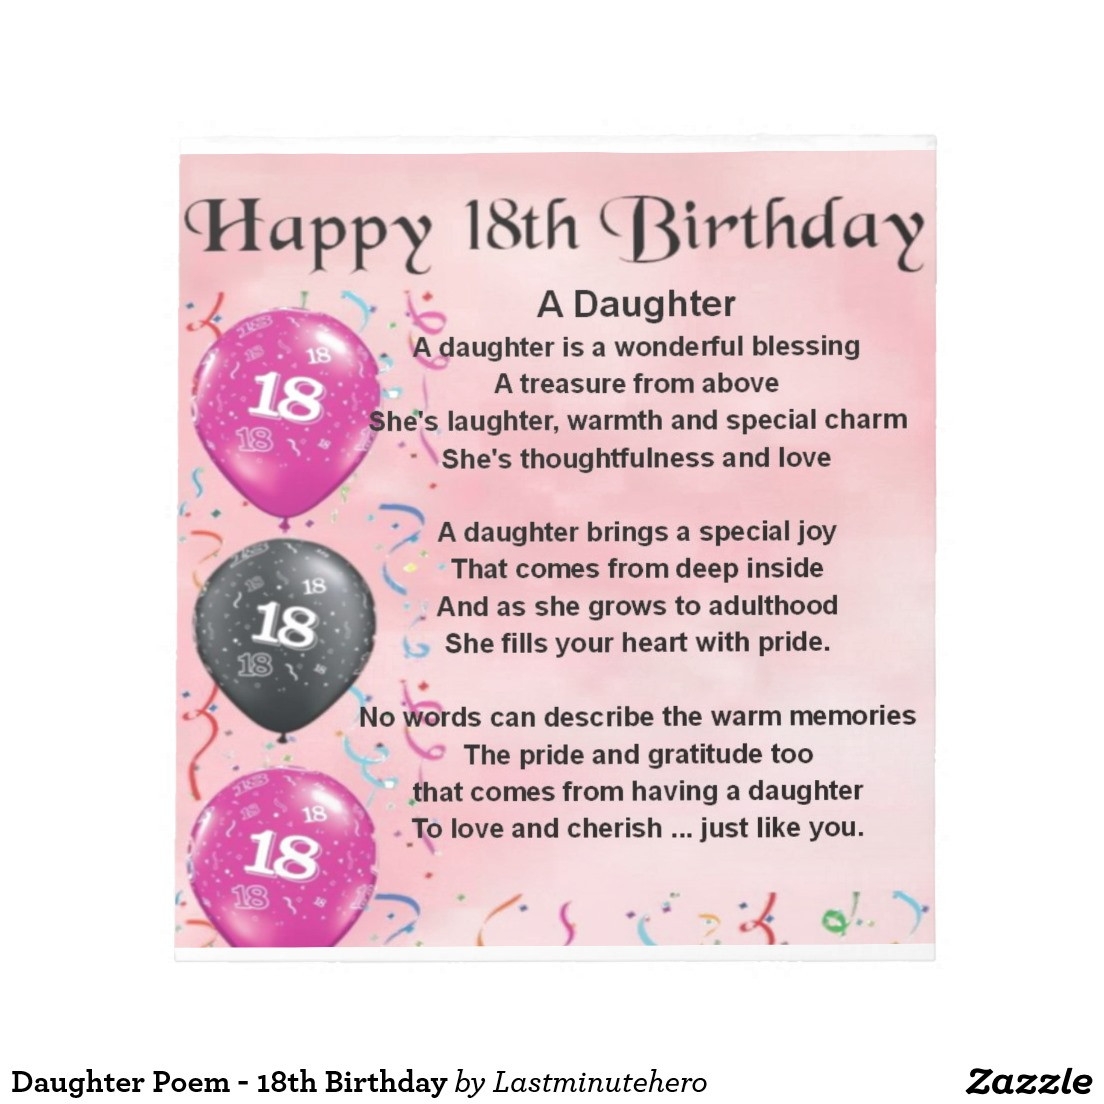 birthday poem for 18 year old daughter ; 18-year-old-birthday-card-messages-best-of-daughter-poem-18th-birthday-notepad-image-of-18-year-old-birthday-card-messages